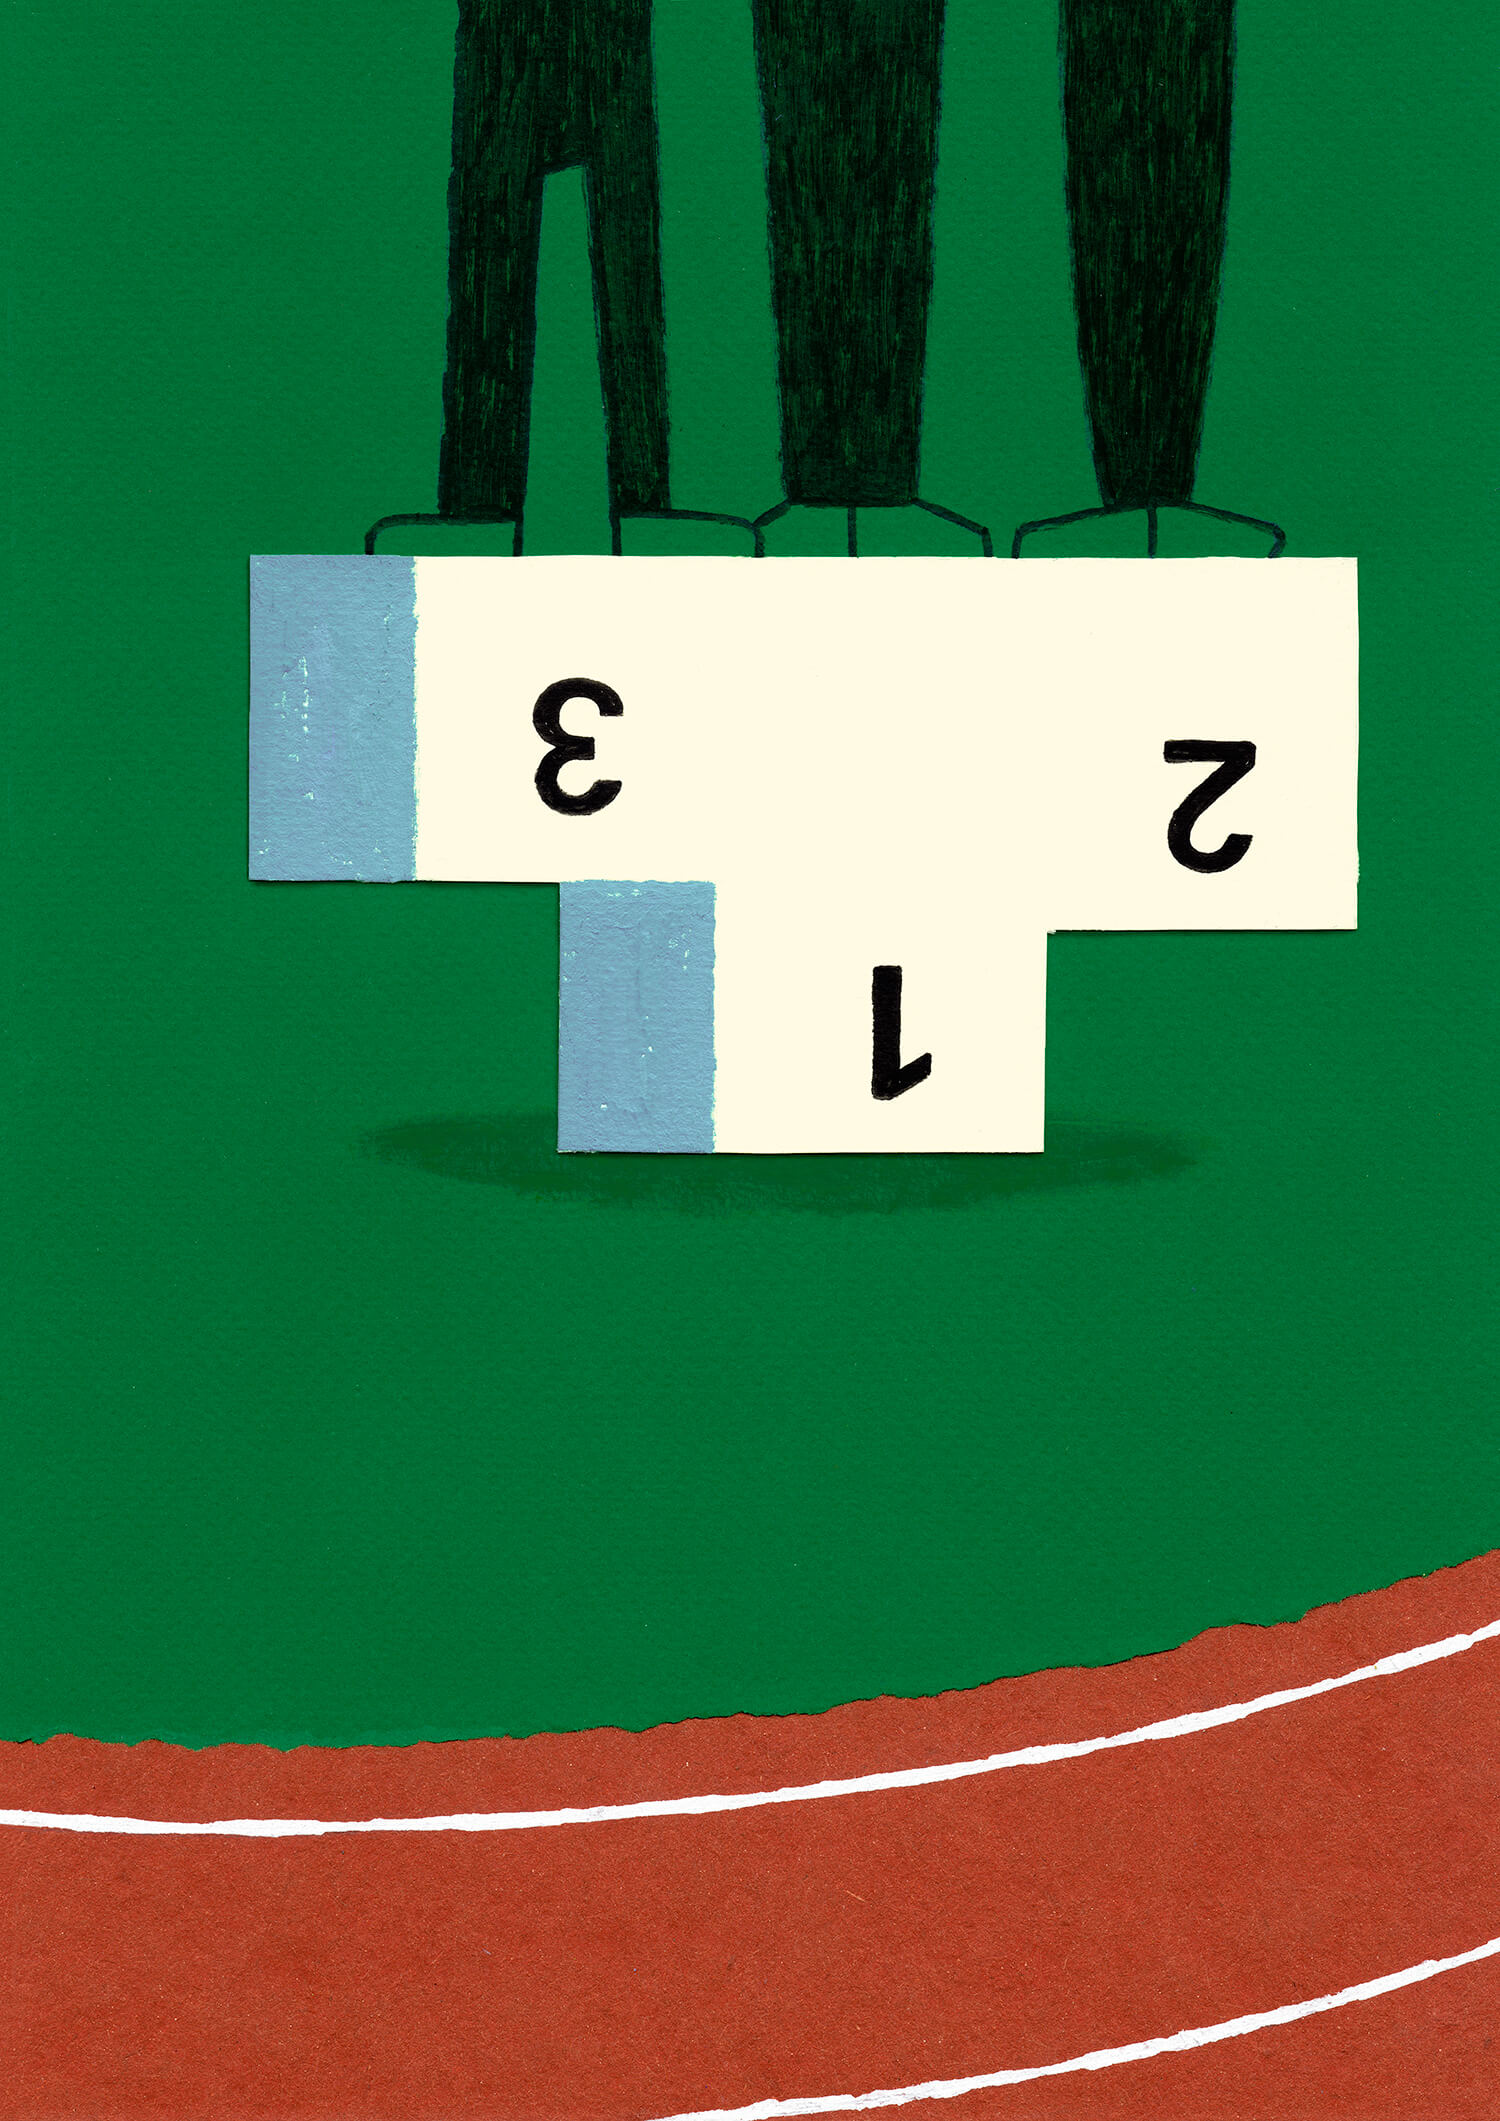 miguel porlan, illustration, fair play, podium, original artwork